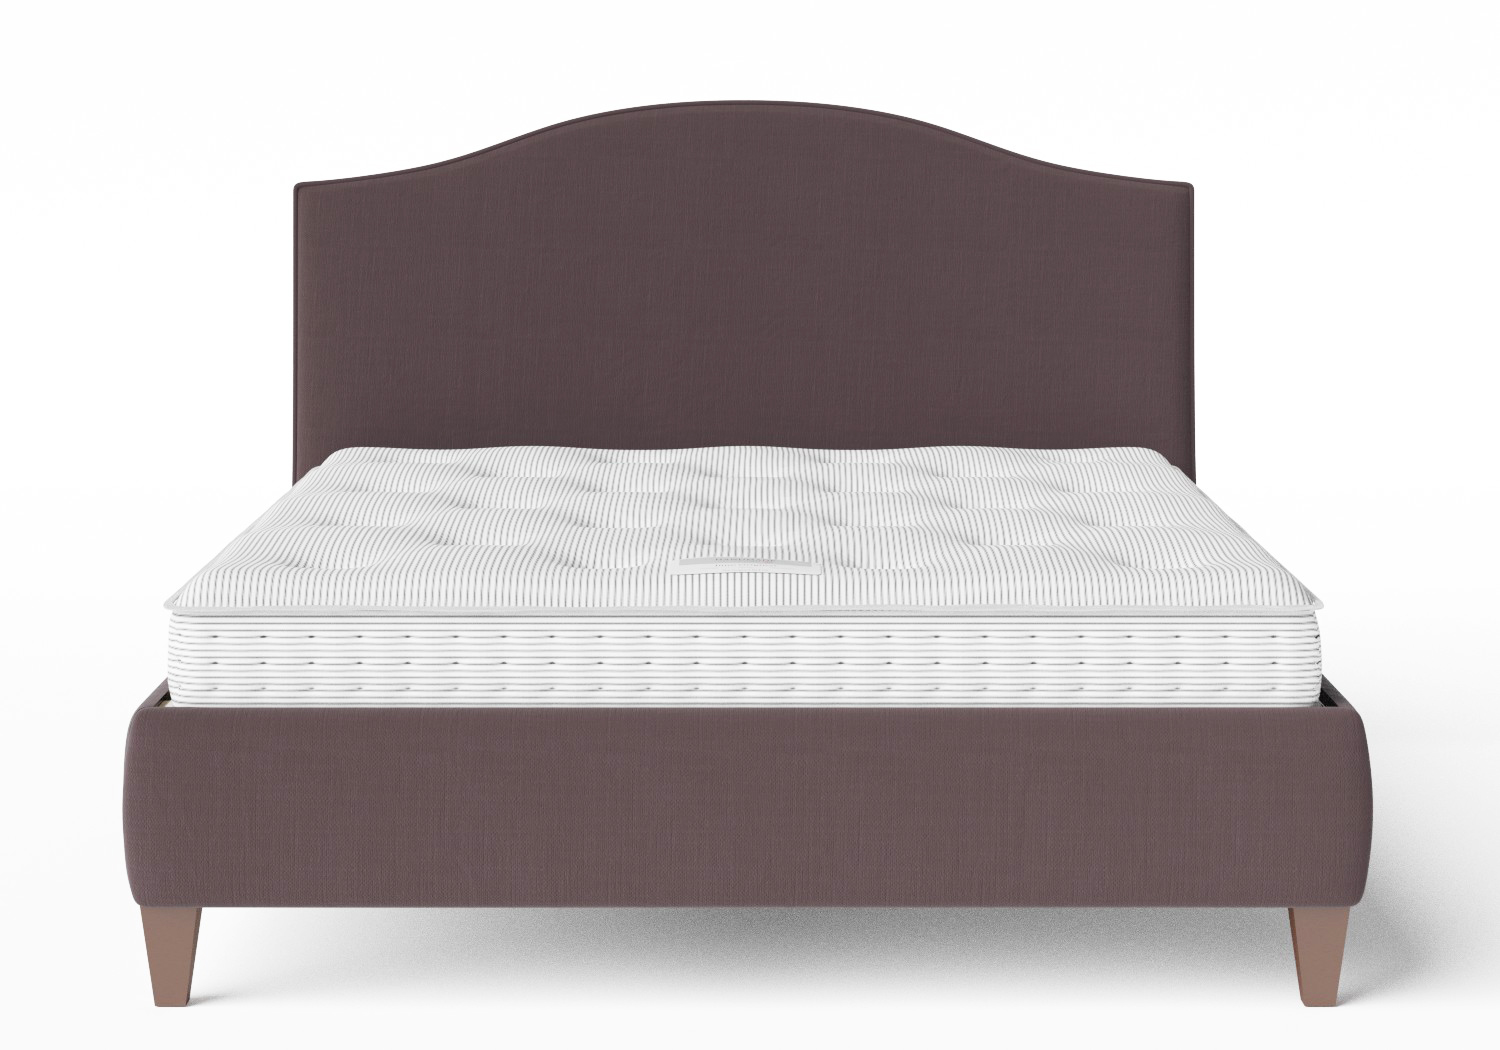 Daniella Upholstered bed in Aubergine fabric with piping shown with Juno 1 mattress